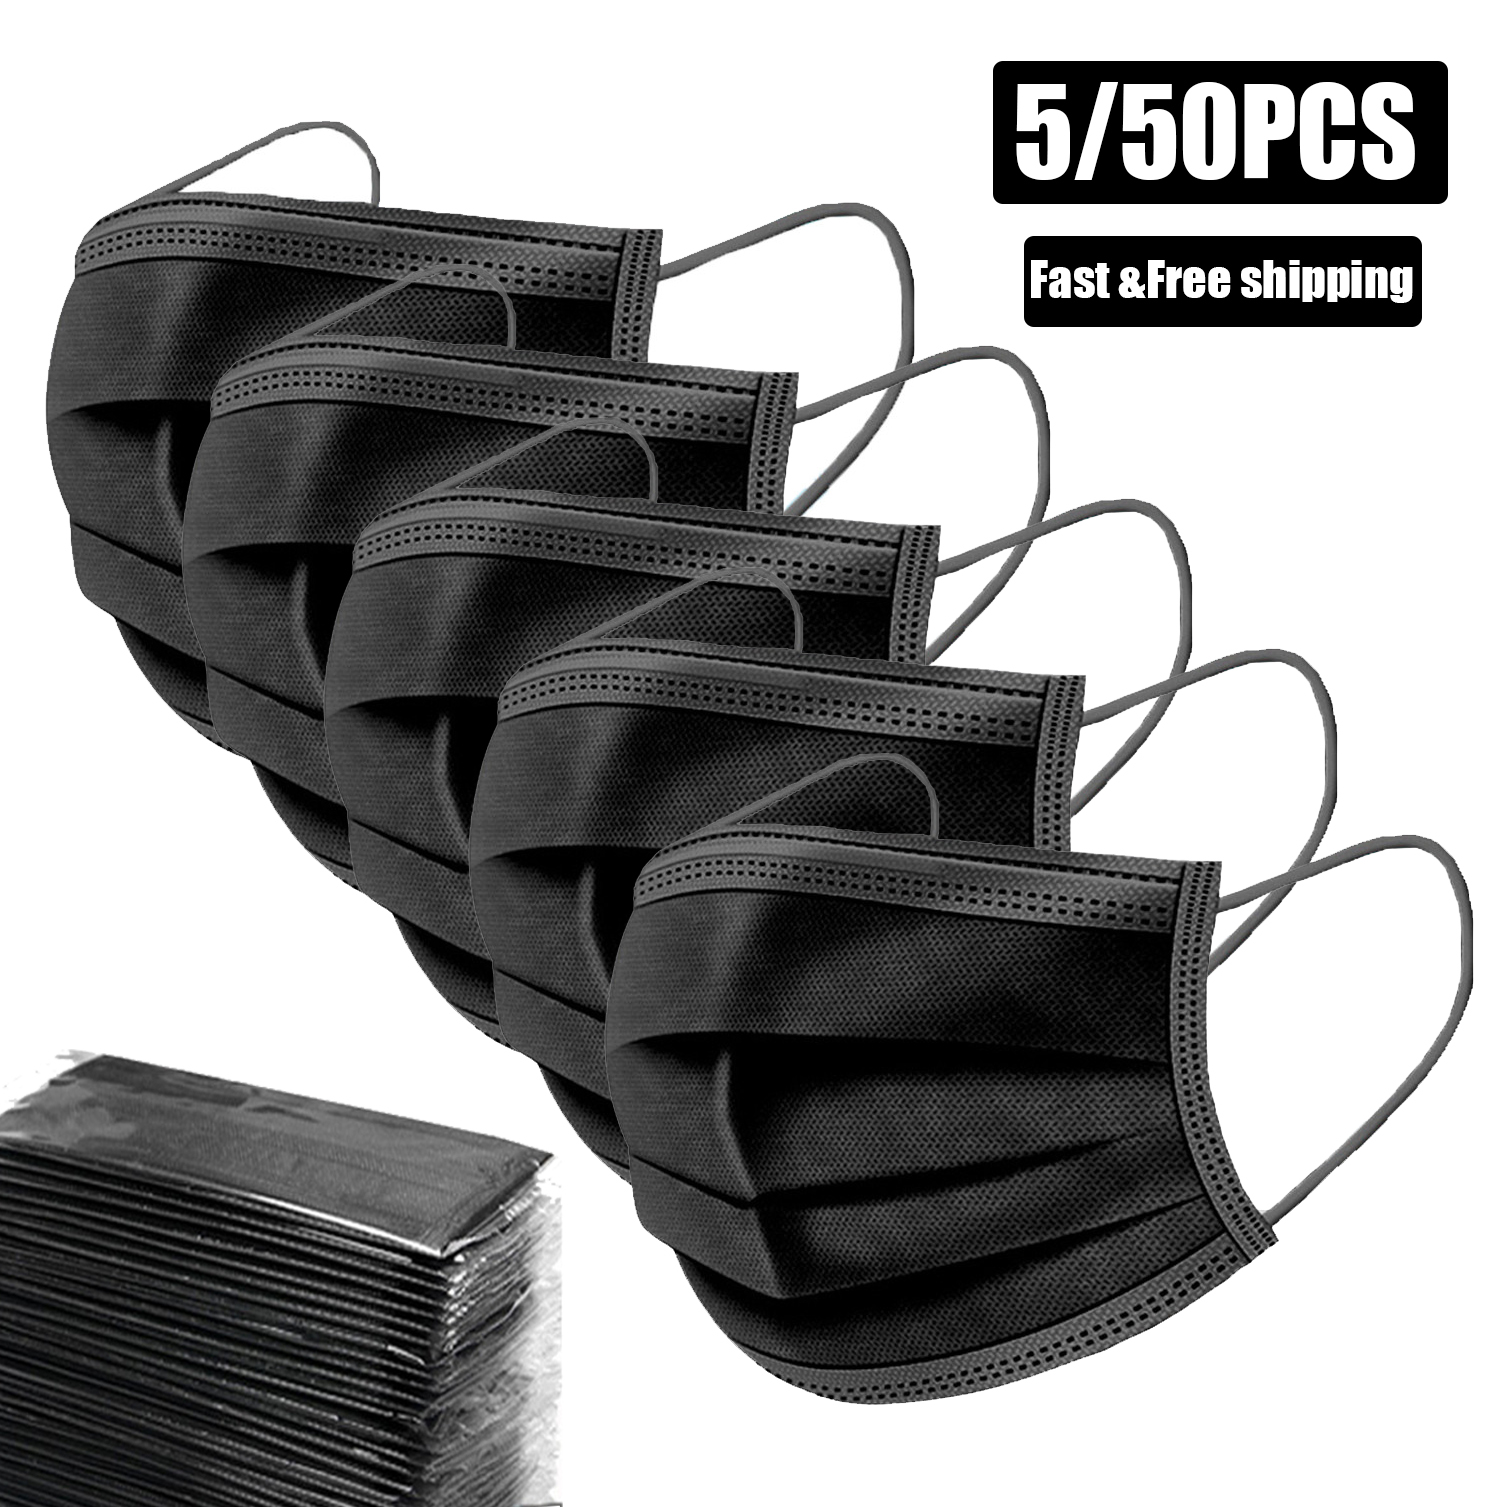 5/50Pcs Disposable Masks 3 Layer Protection Black Mouth Mask Dust Cotton Face Masks Non-Woven Mask Activated Anti Pollution